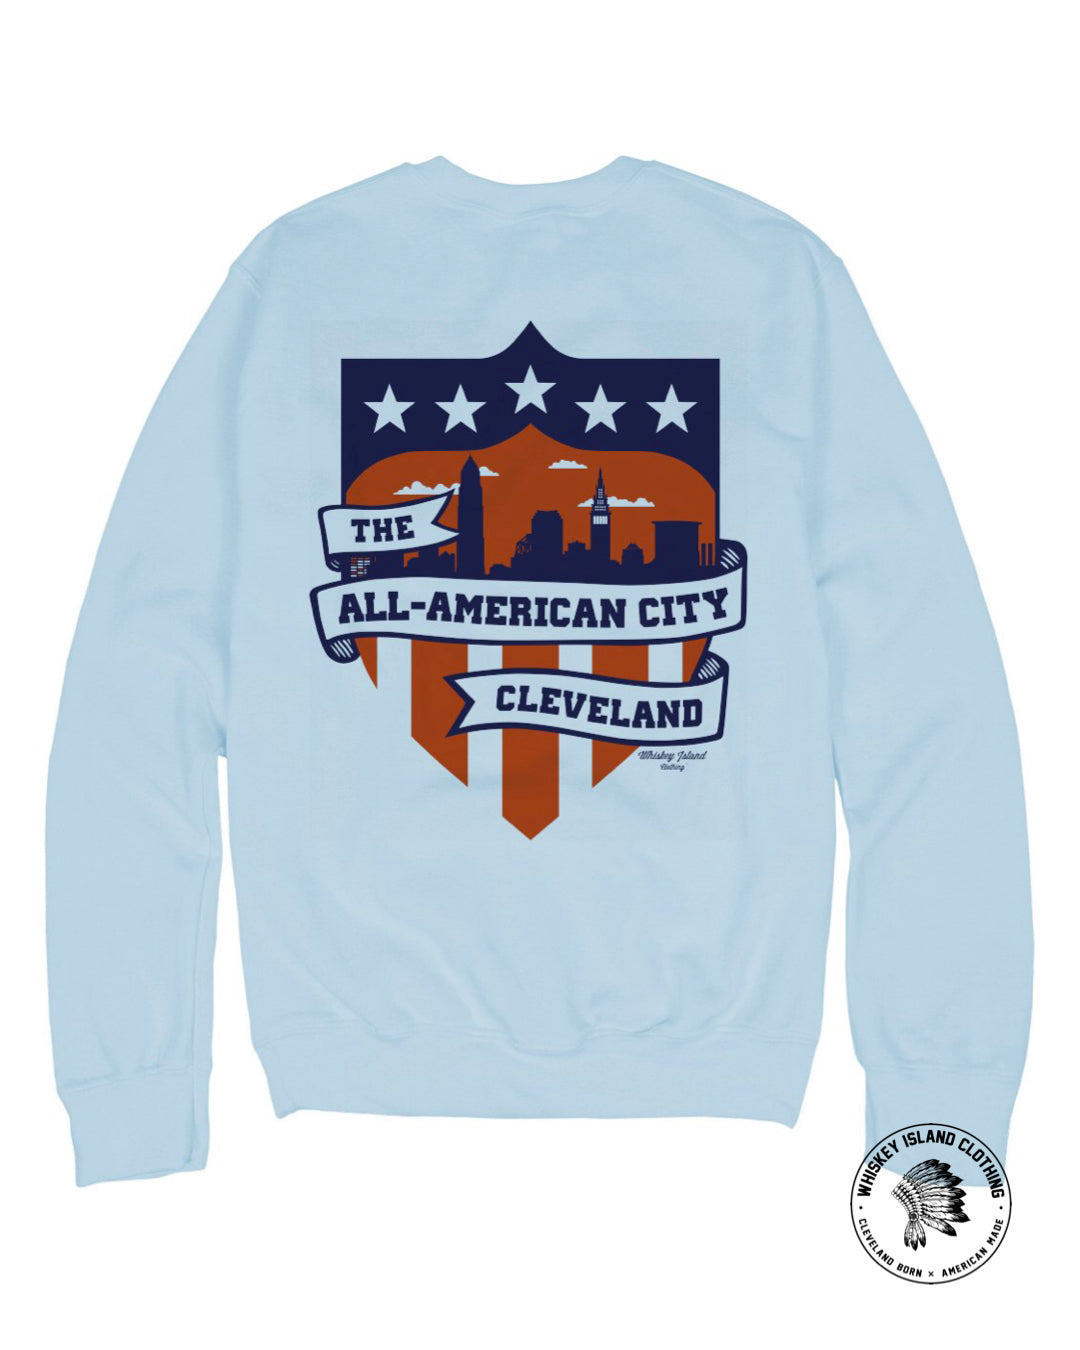 All American City of Cleveland - Unisex Sweatshirt - Whiskey Island Clothing